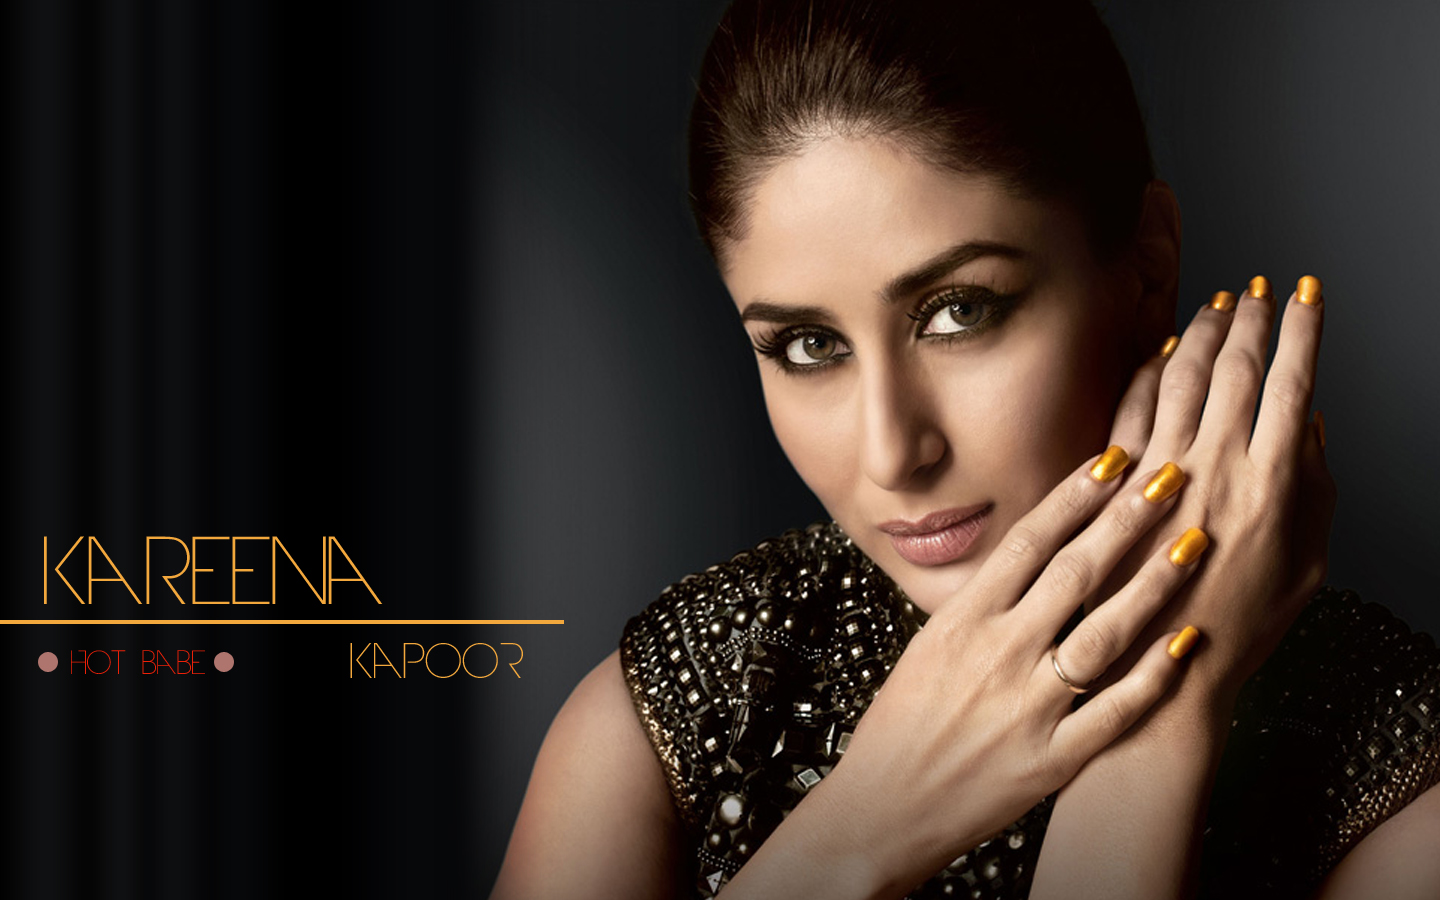 Kareena Kapoor HD Wallpapers Download Desktop Wallpaper Images 1440x900